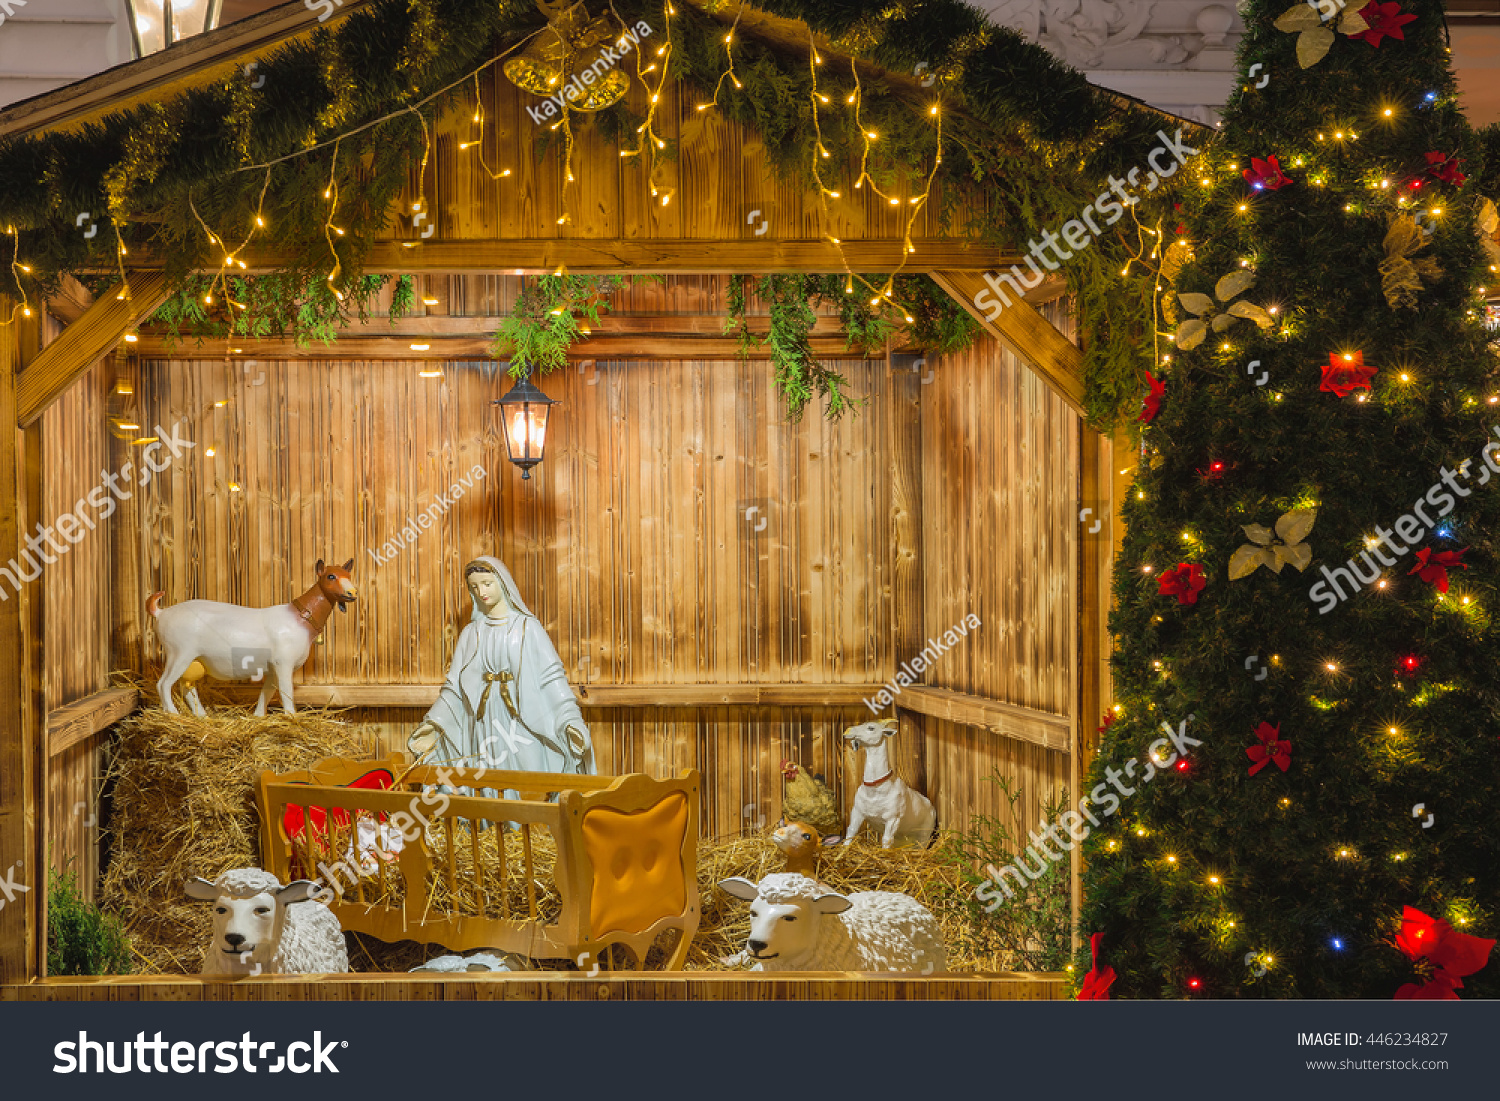 nativity scene holy family joseph mary stock photo 446234827